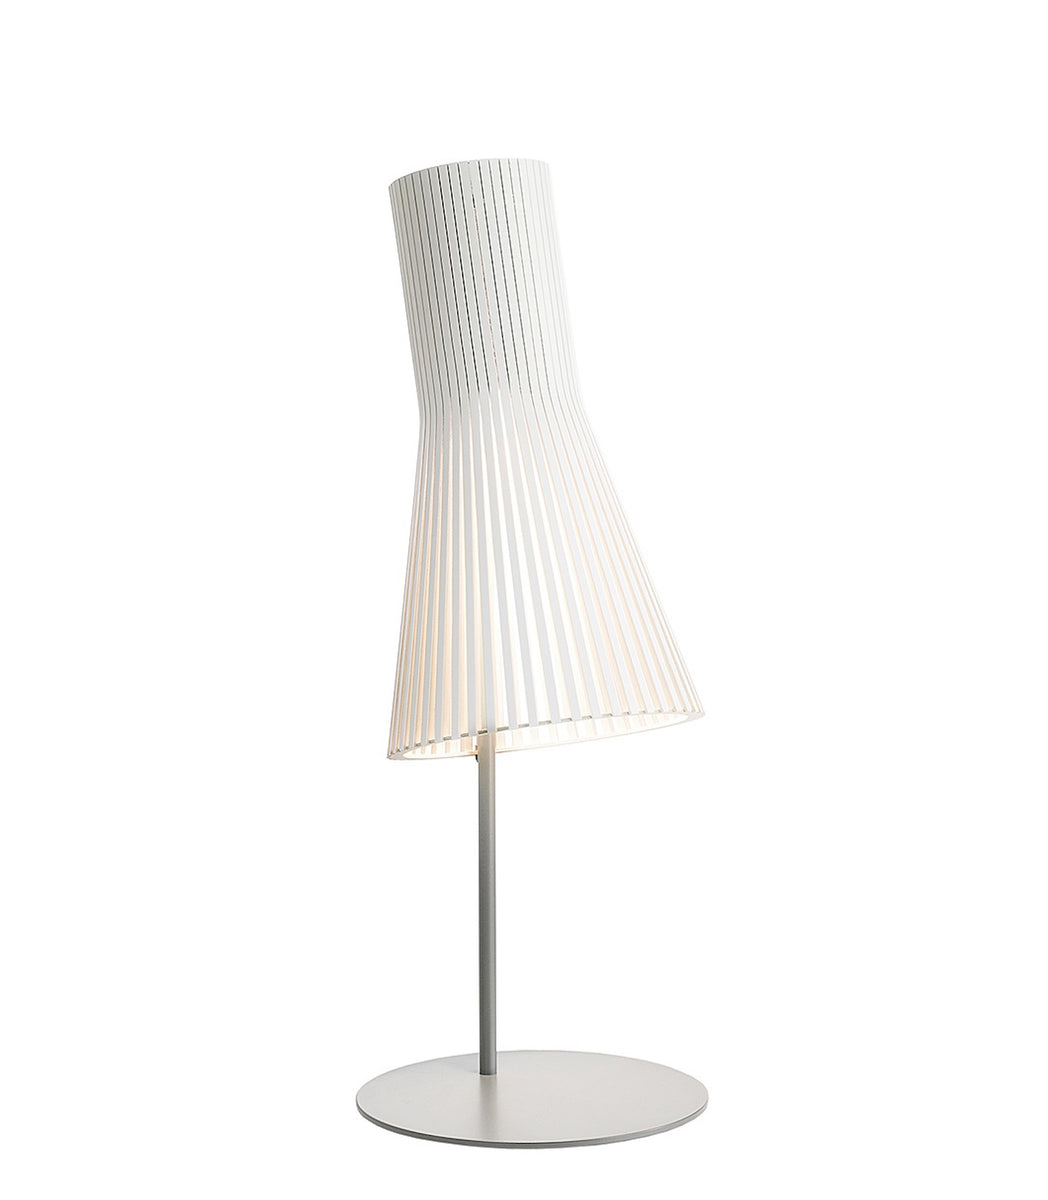 Secto Table light wooden shade 4220 White 3